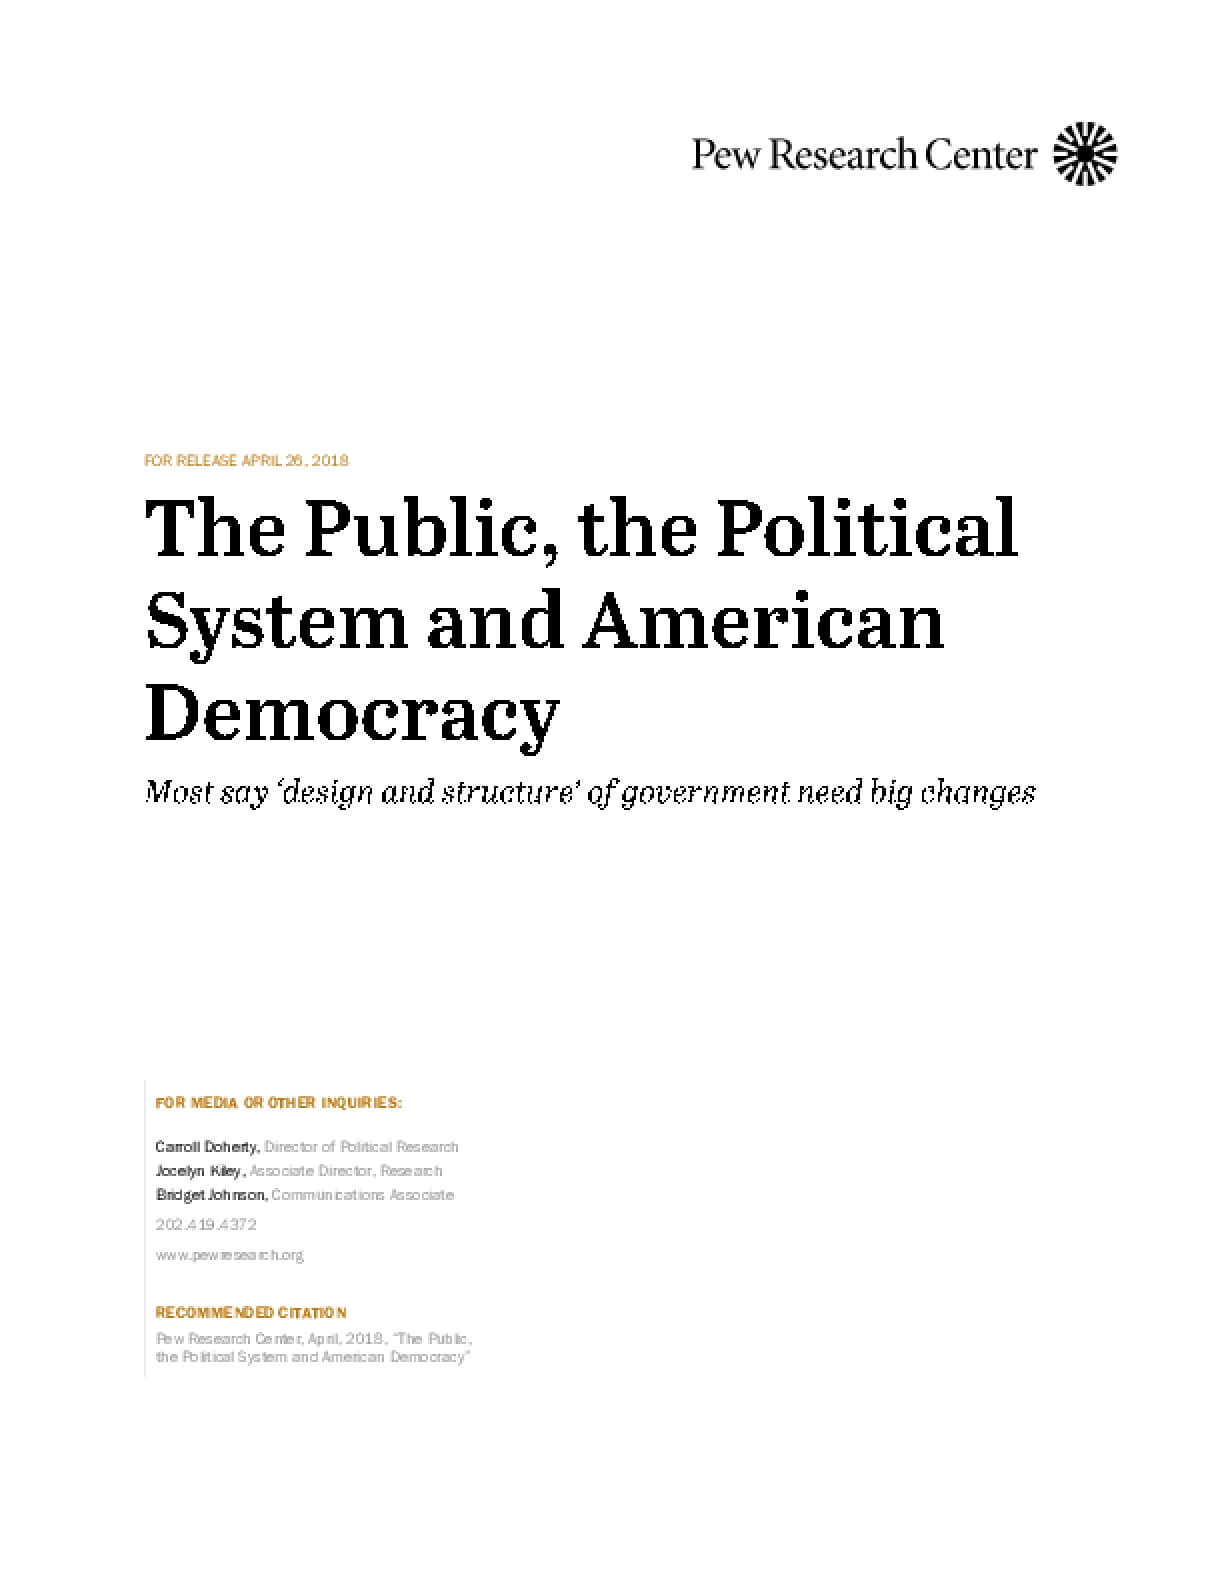 The Public, the Political System and American Democracy